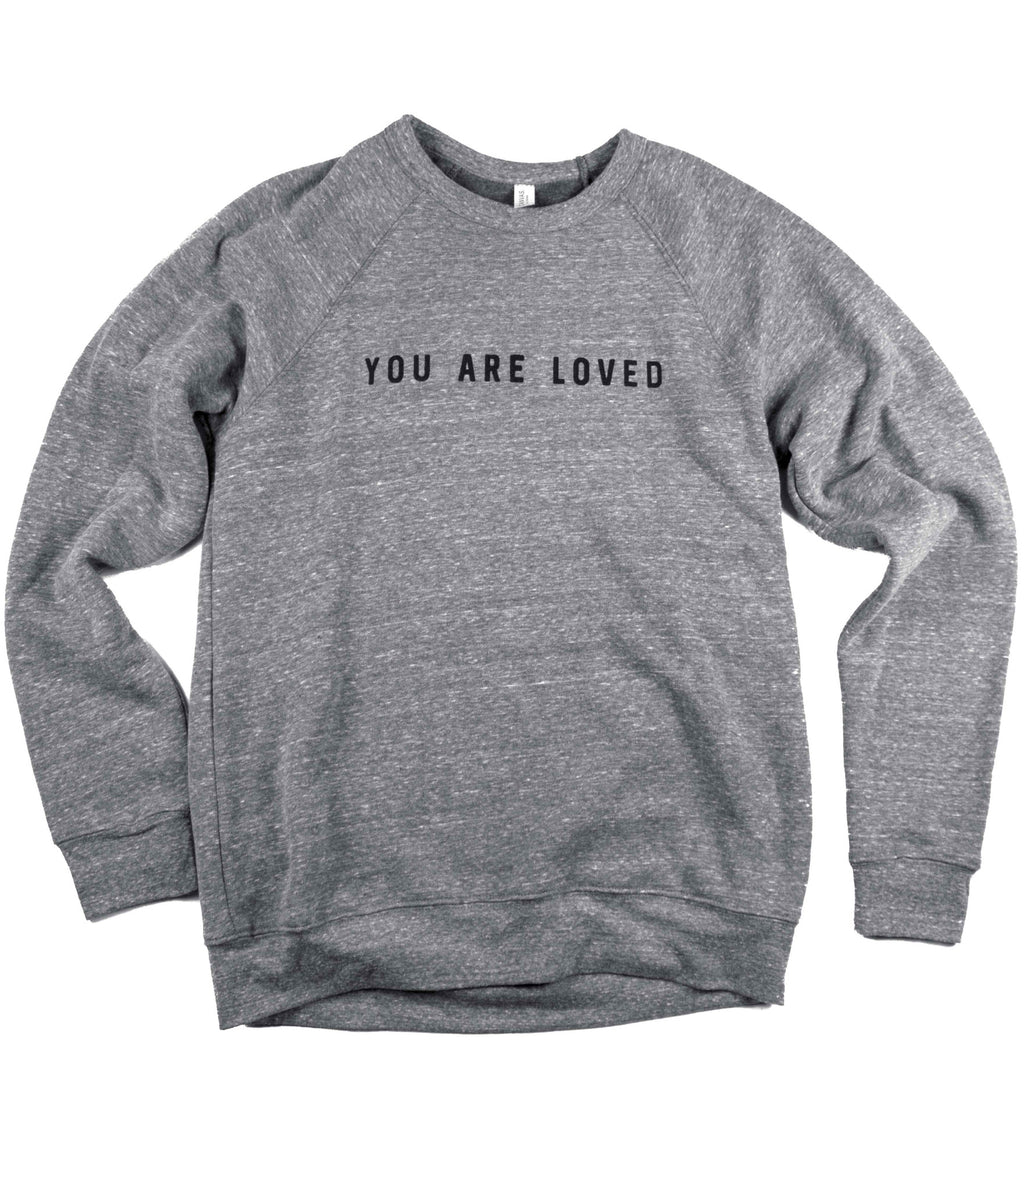 YOU ARE LOVED GREY CREWNECK SWEATSHIRT